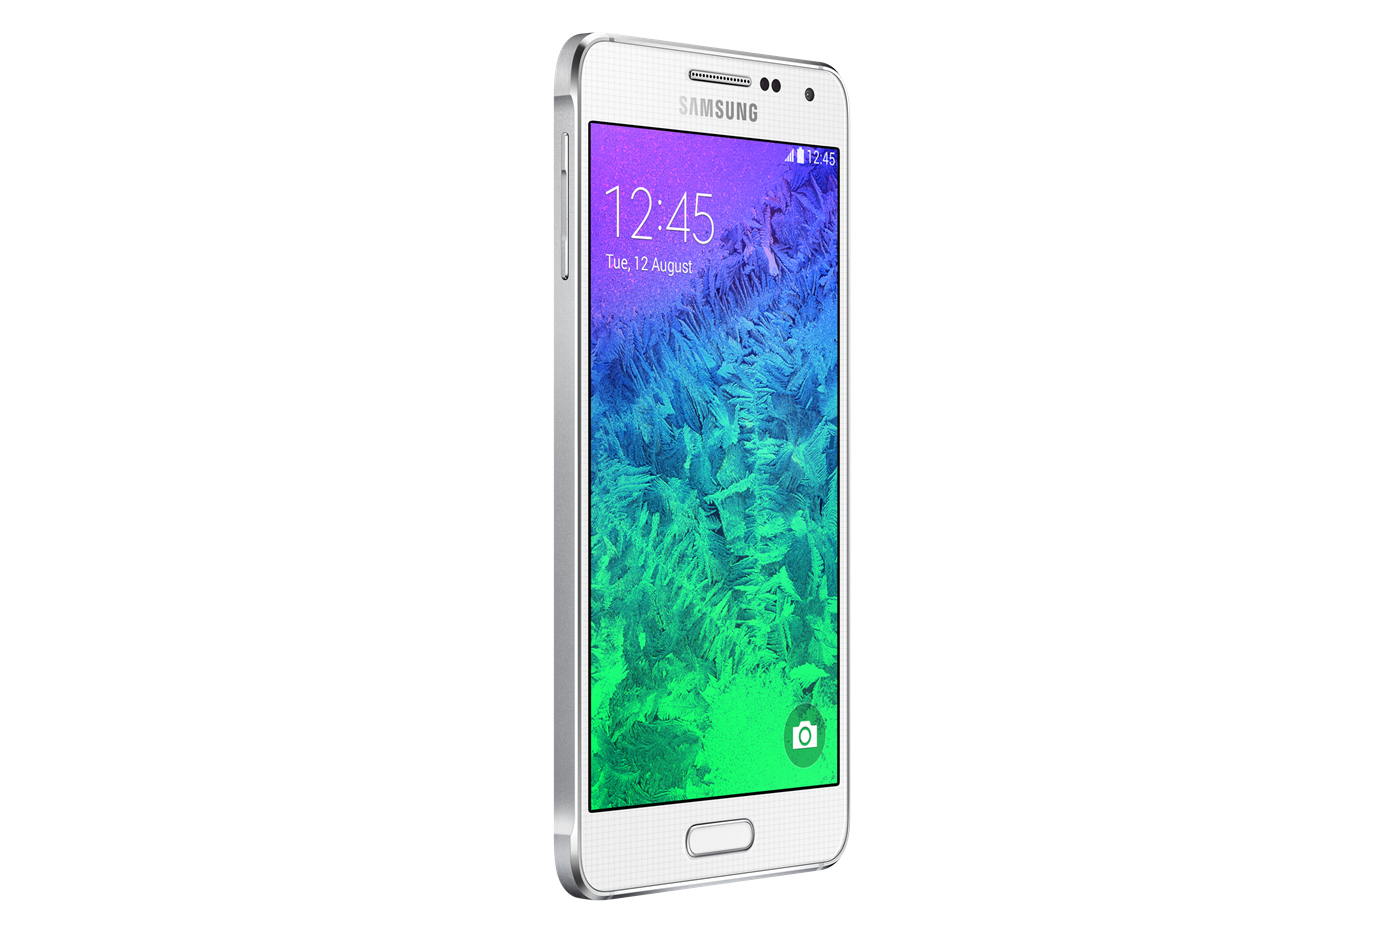 Full Metal Samsung Galaxy A3 (SM-A300) Leaked Images